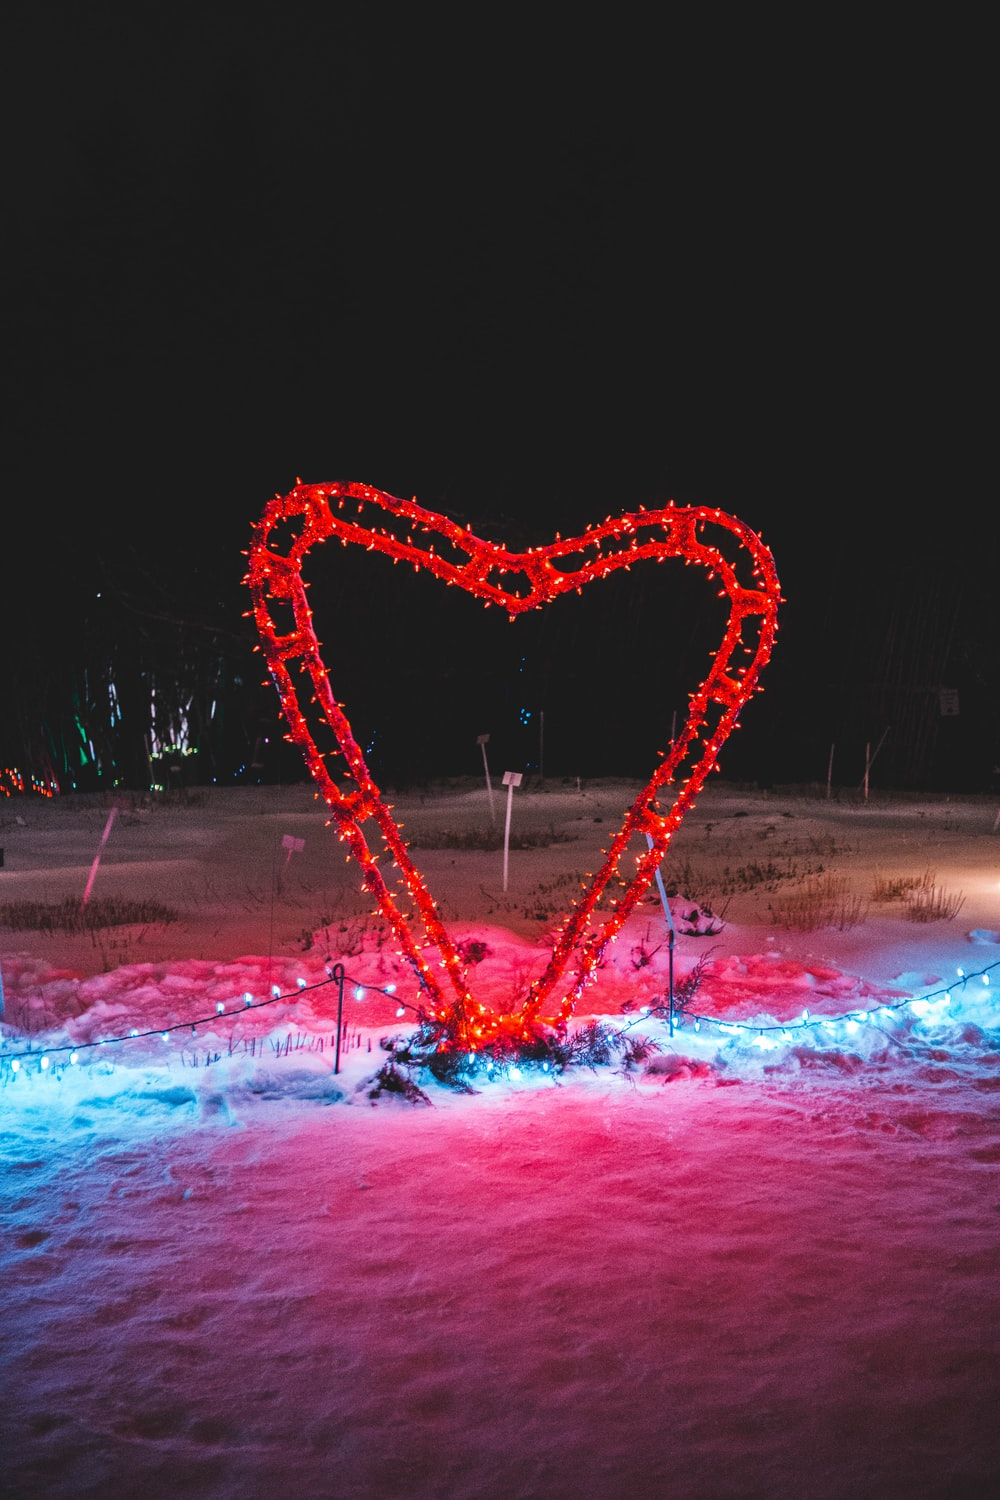 red heart on snow at night